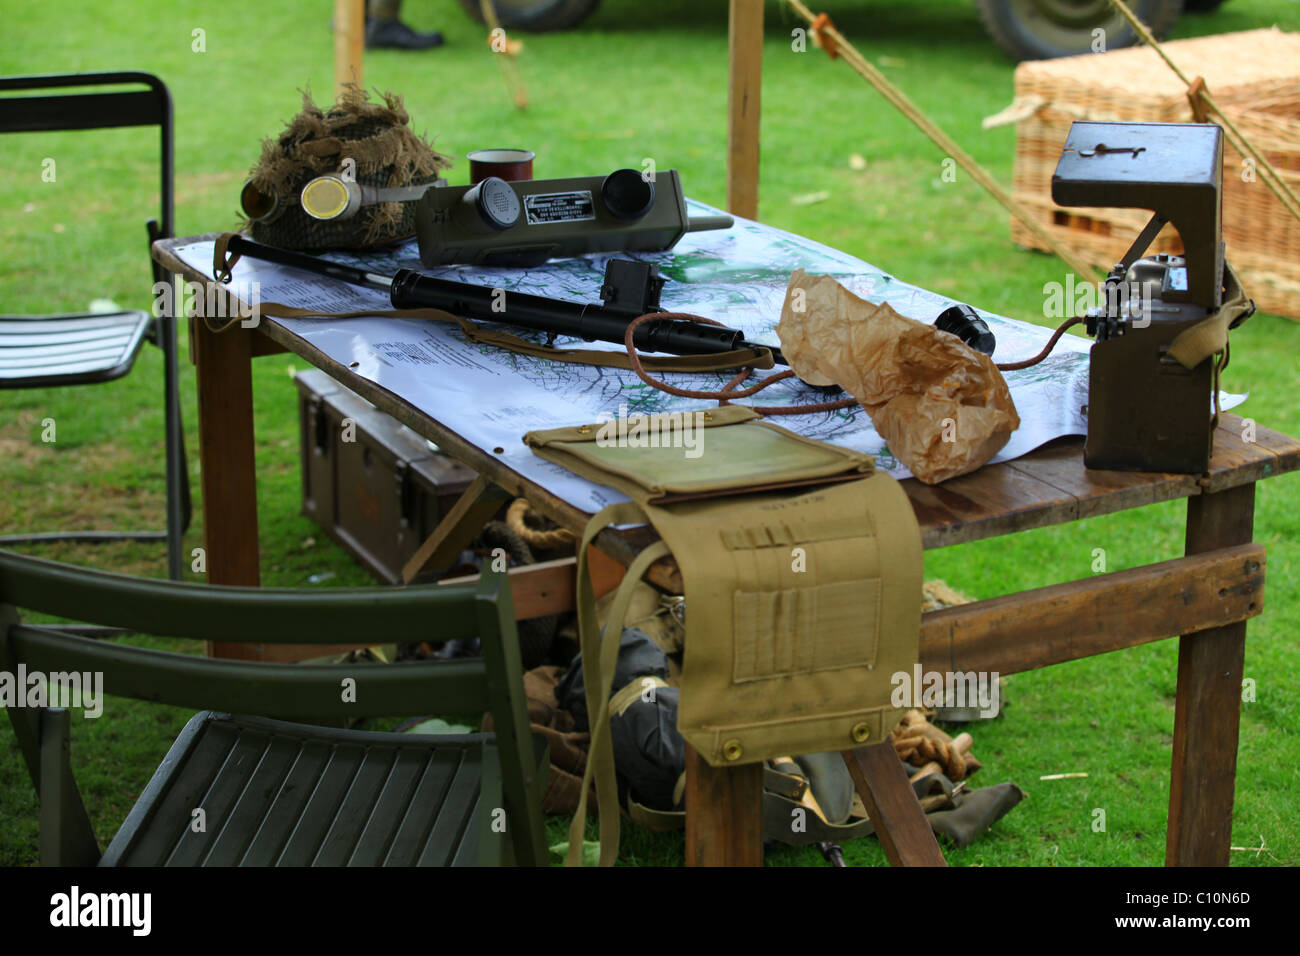 Reconstruction WW2 British Army Field HQ with field radio, Sten gun and map - Stock Image